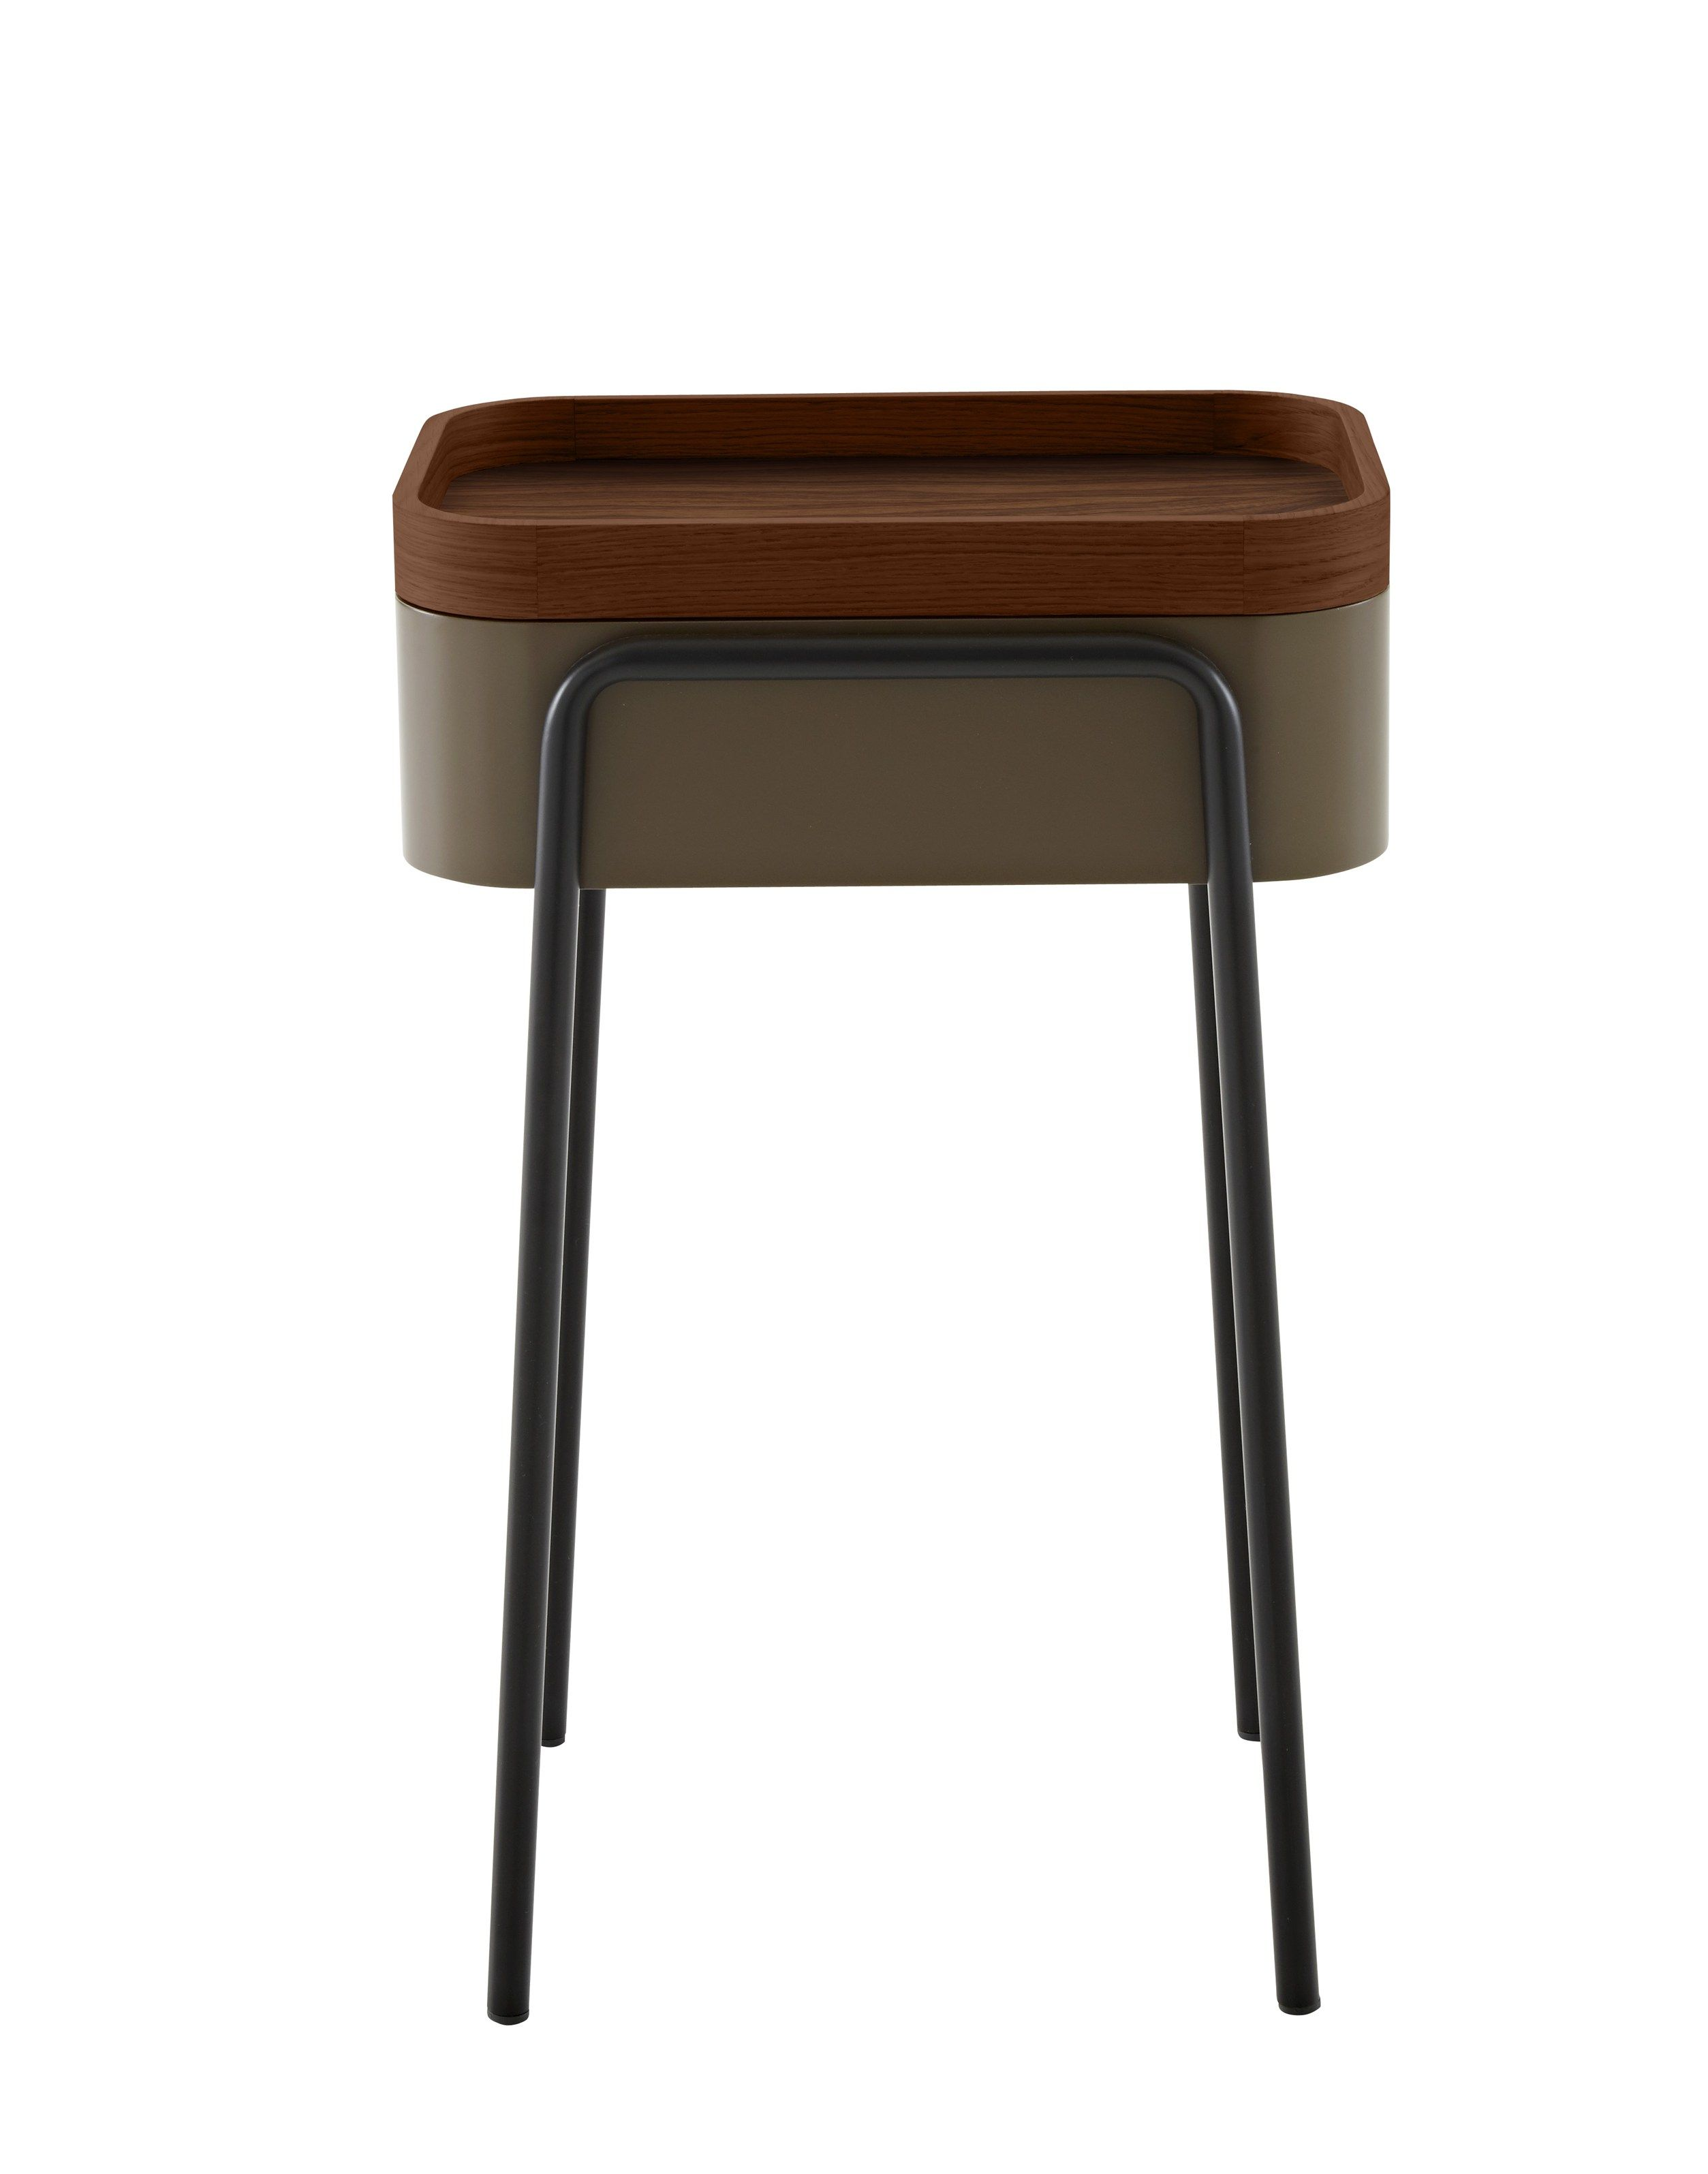 Wooden Side Table Designs Wooden Coffee Table Bedside Table Couliss By Roset Italia Design